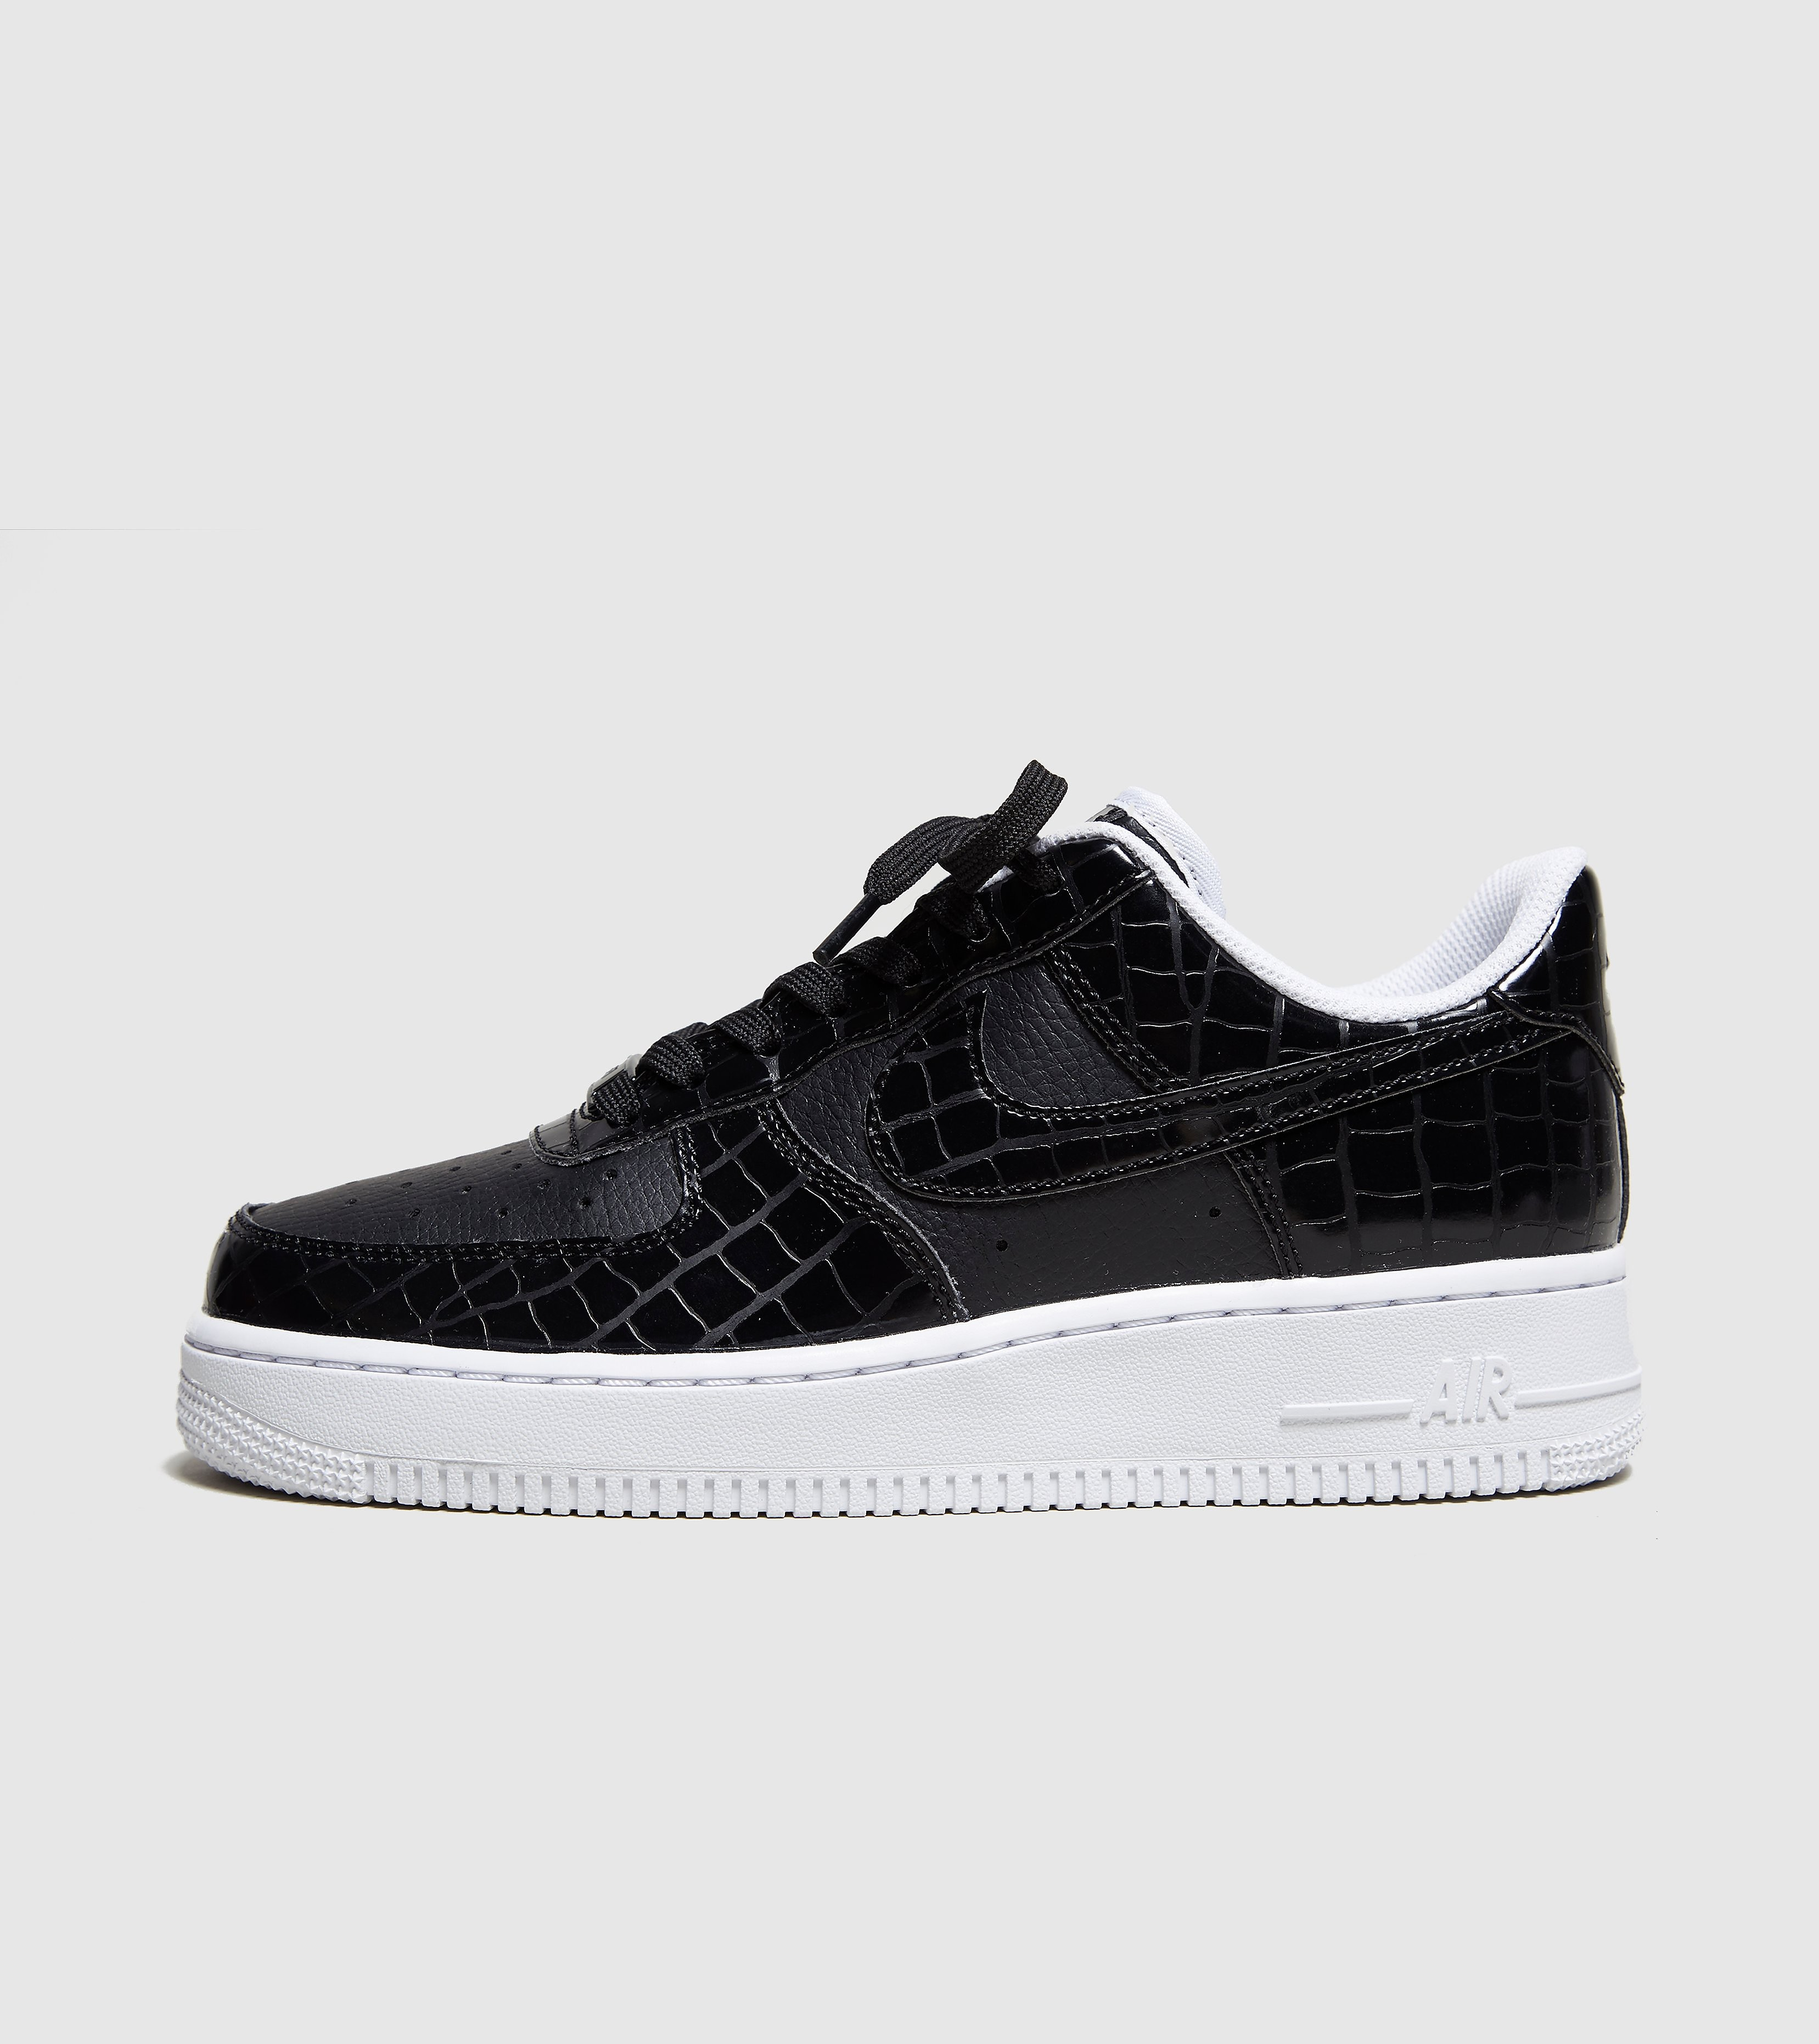 Nike Air Force 1 Reptile Women's